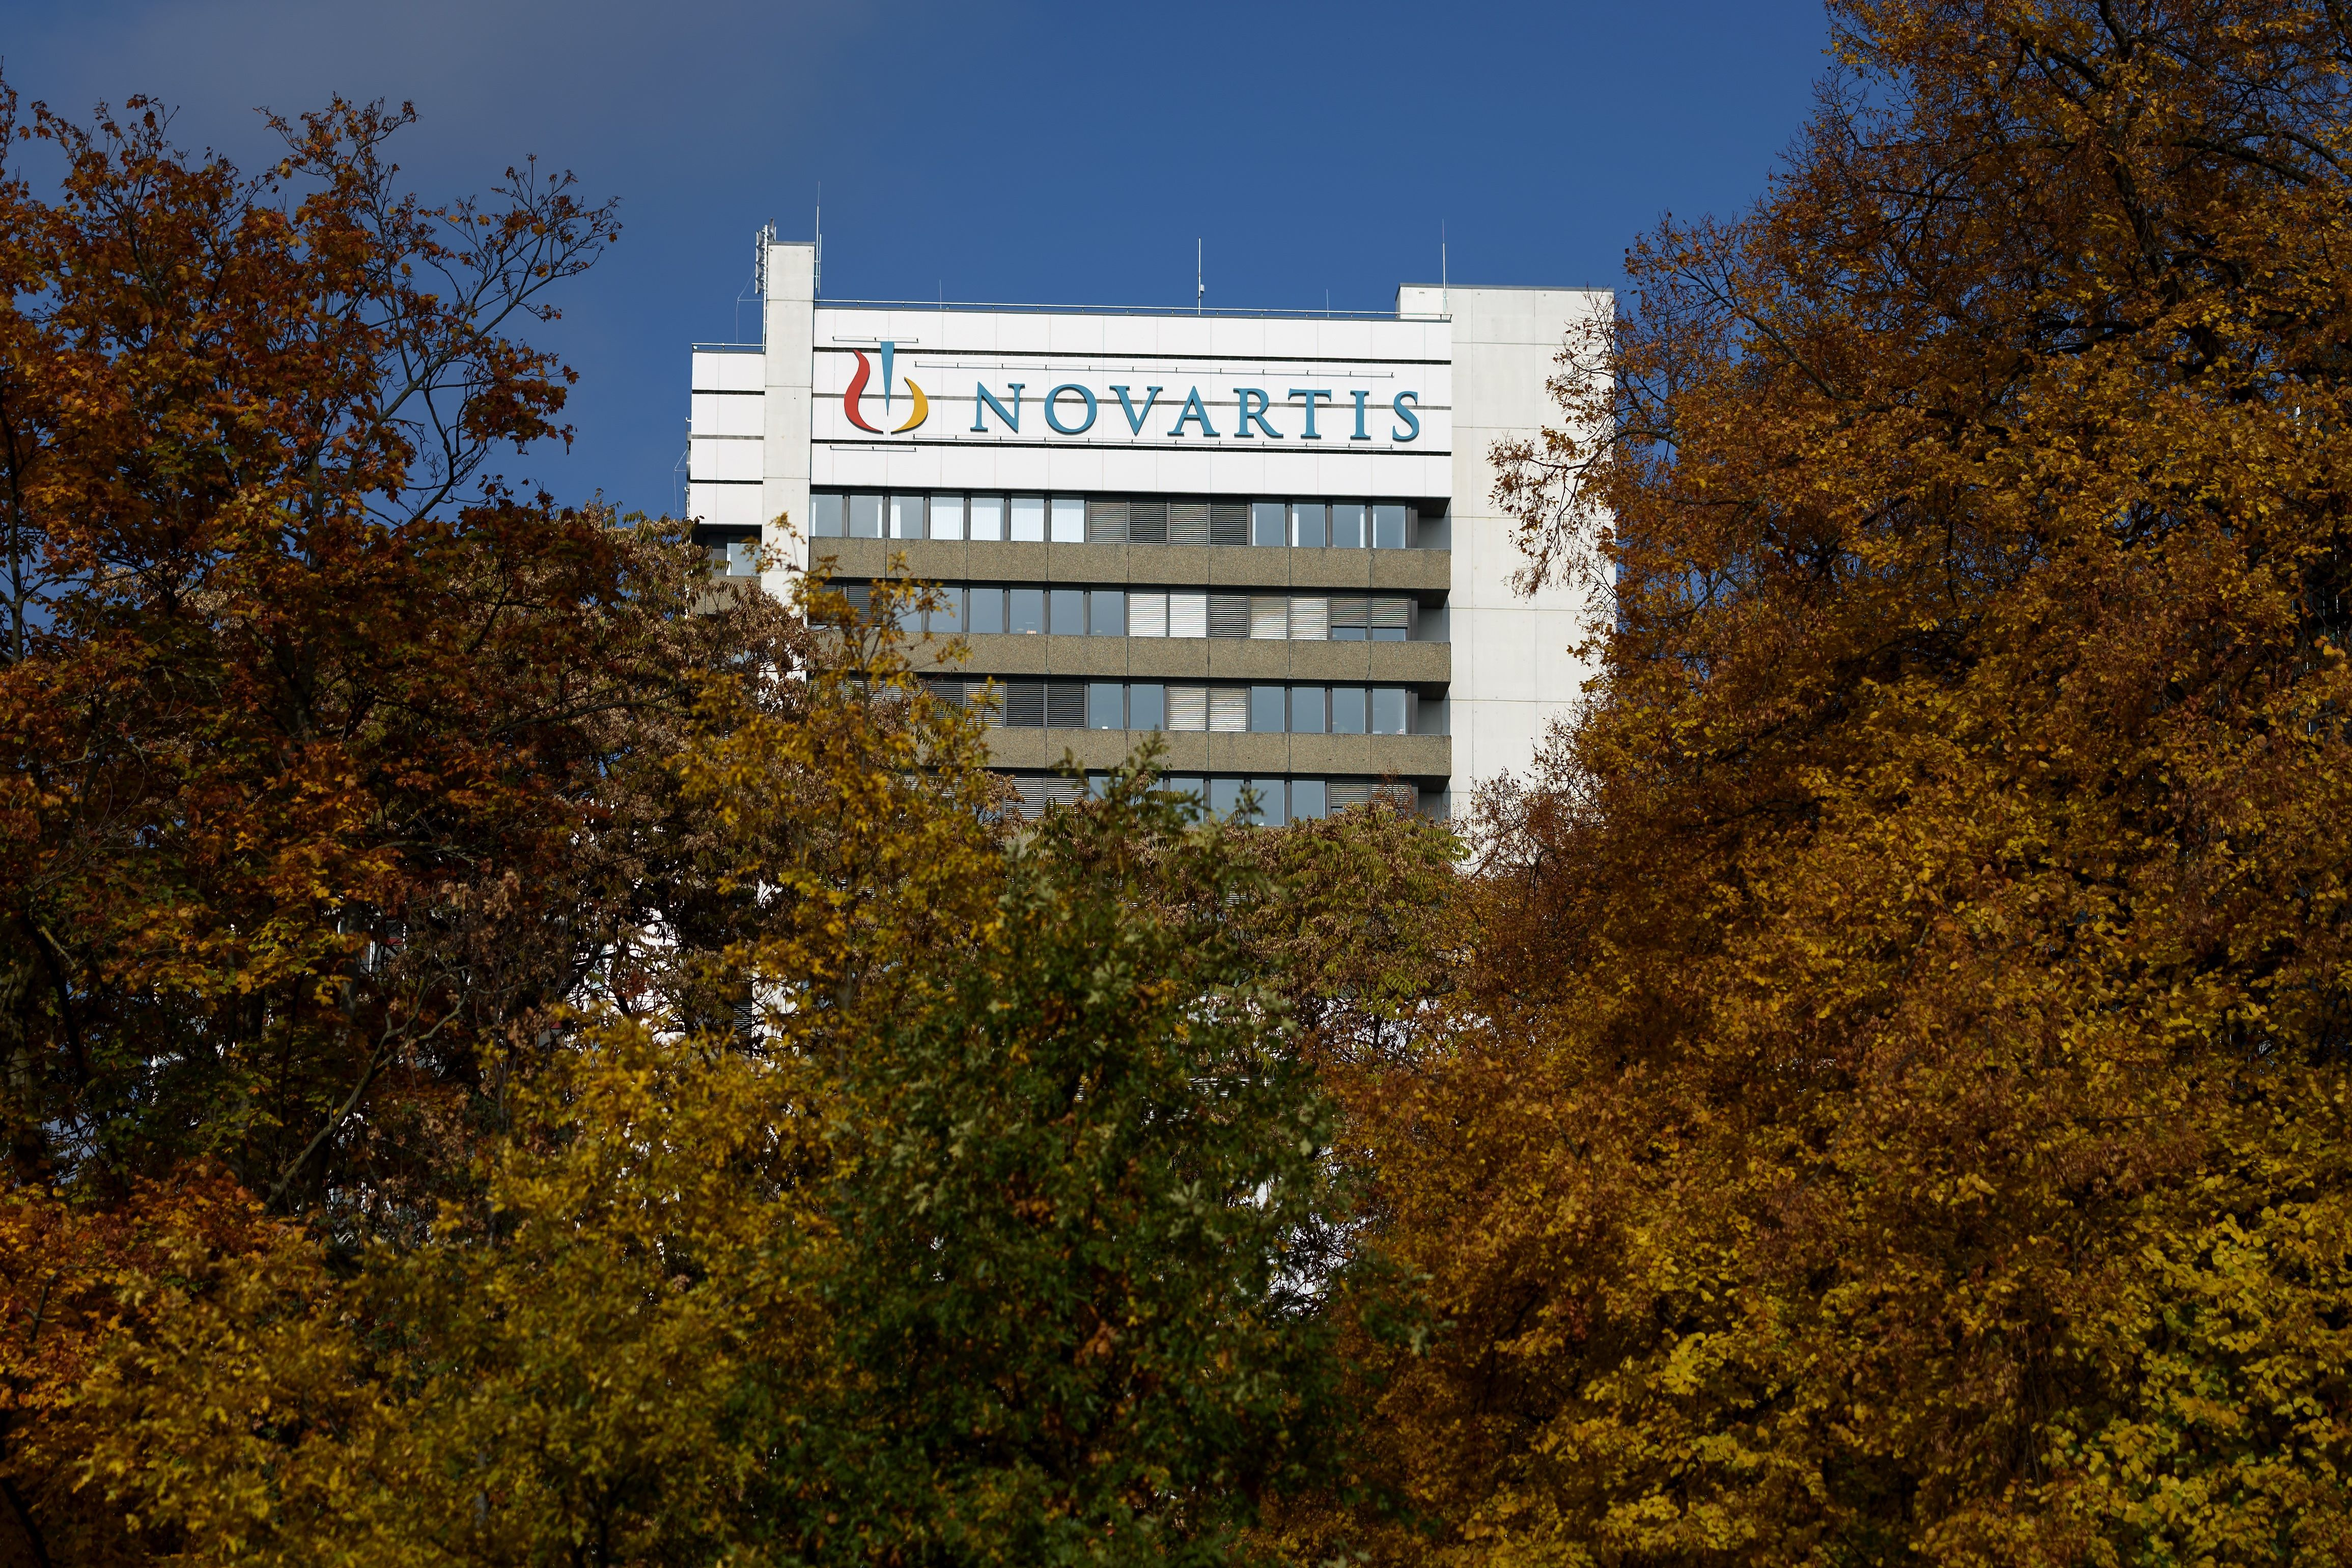 SWITZERLAND-PHARMA-EARNINGS-COMPANY-NOVARTIS